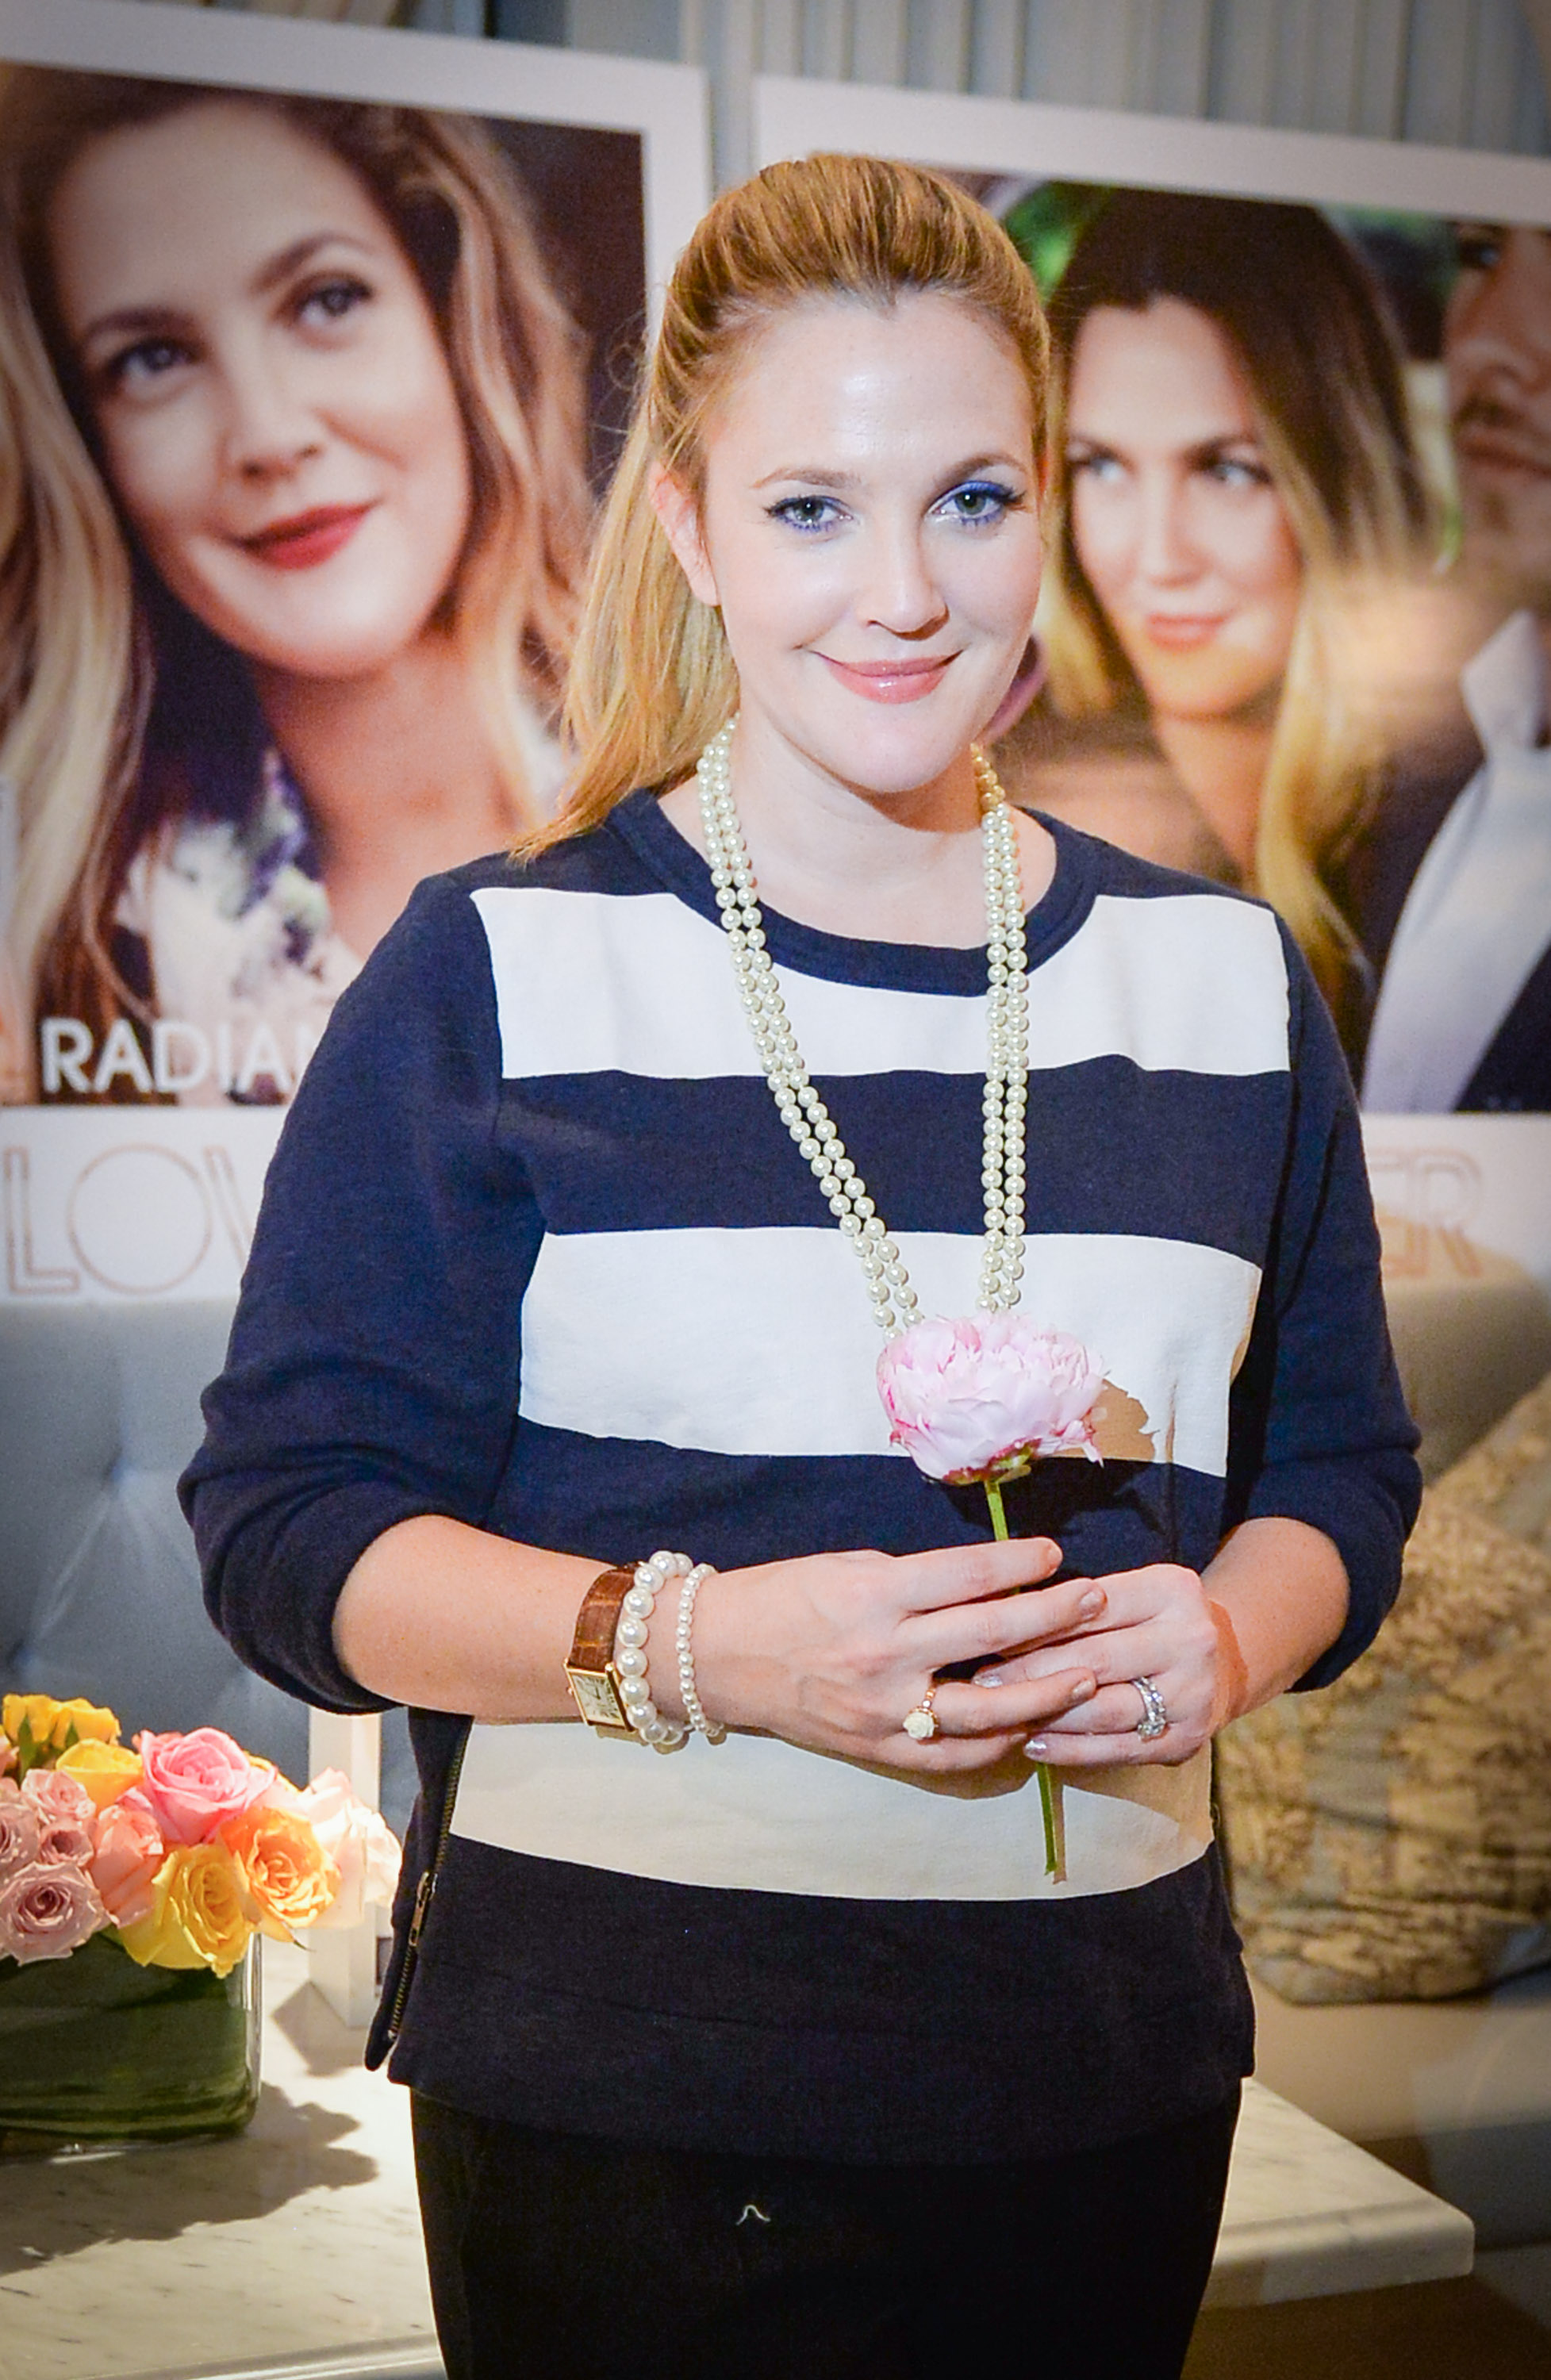 An Evening With Drew Barrymore And Flower Beauty Sidewalk Hustle